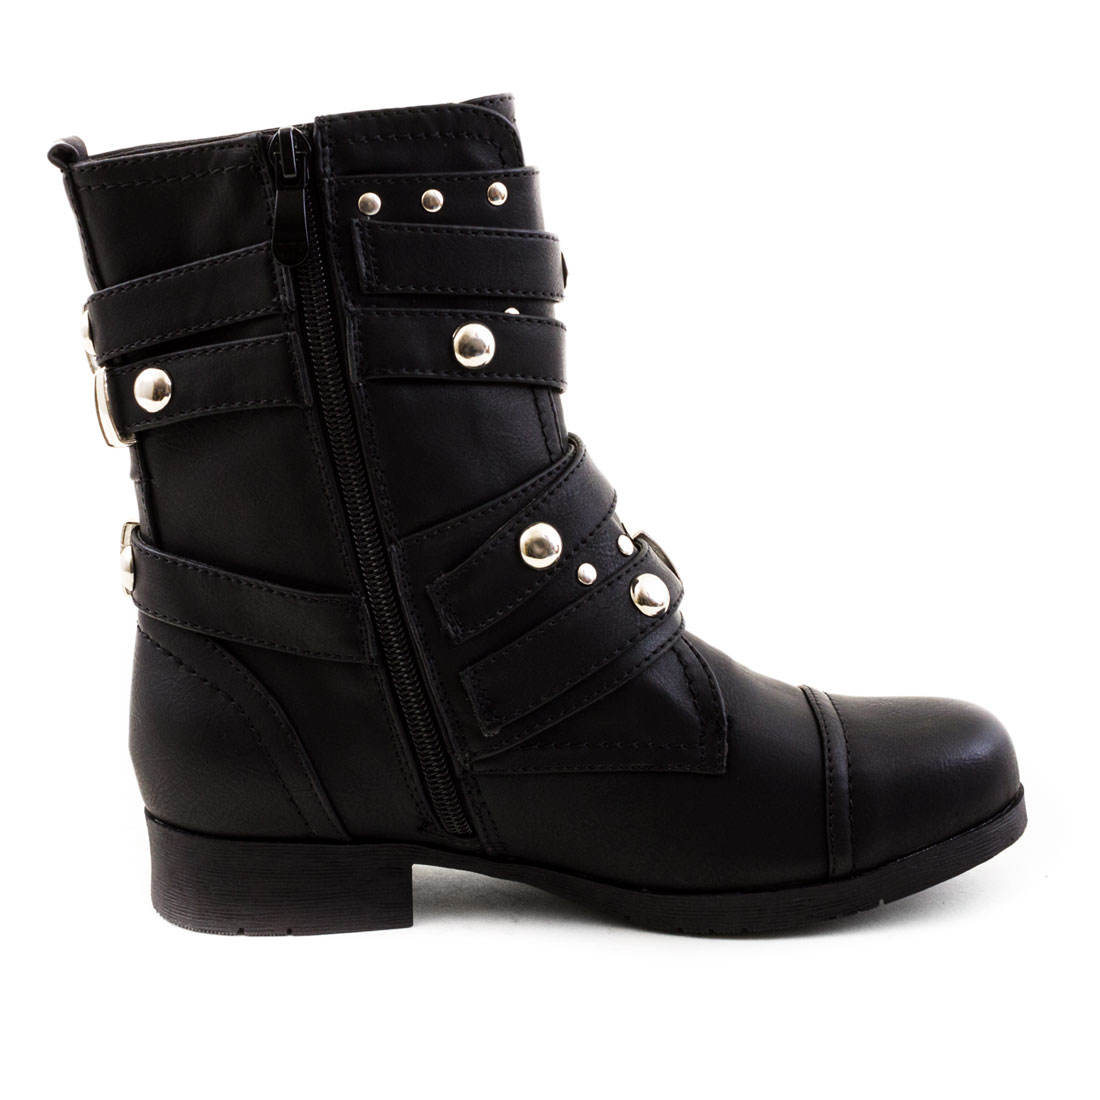 neu damen worker boots nieten stiefel stiefeletten schuhe gr 36 37 38 39 40 41 ebay. Black Bedroom Furniture Sets. Home Design Ideas